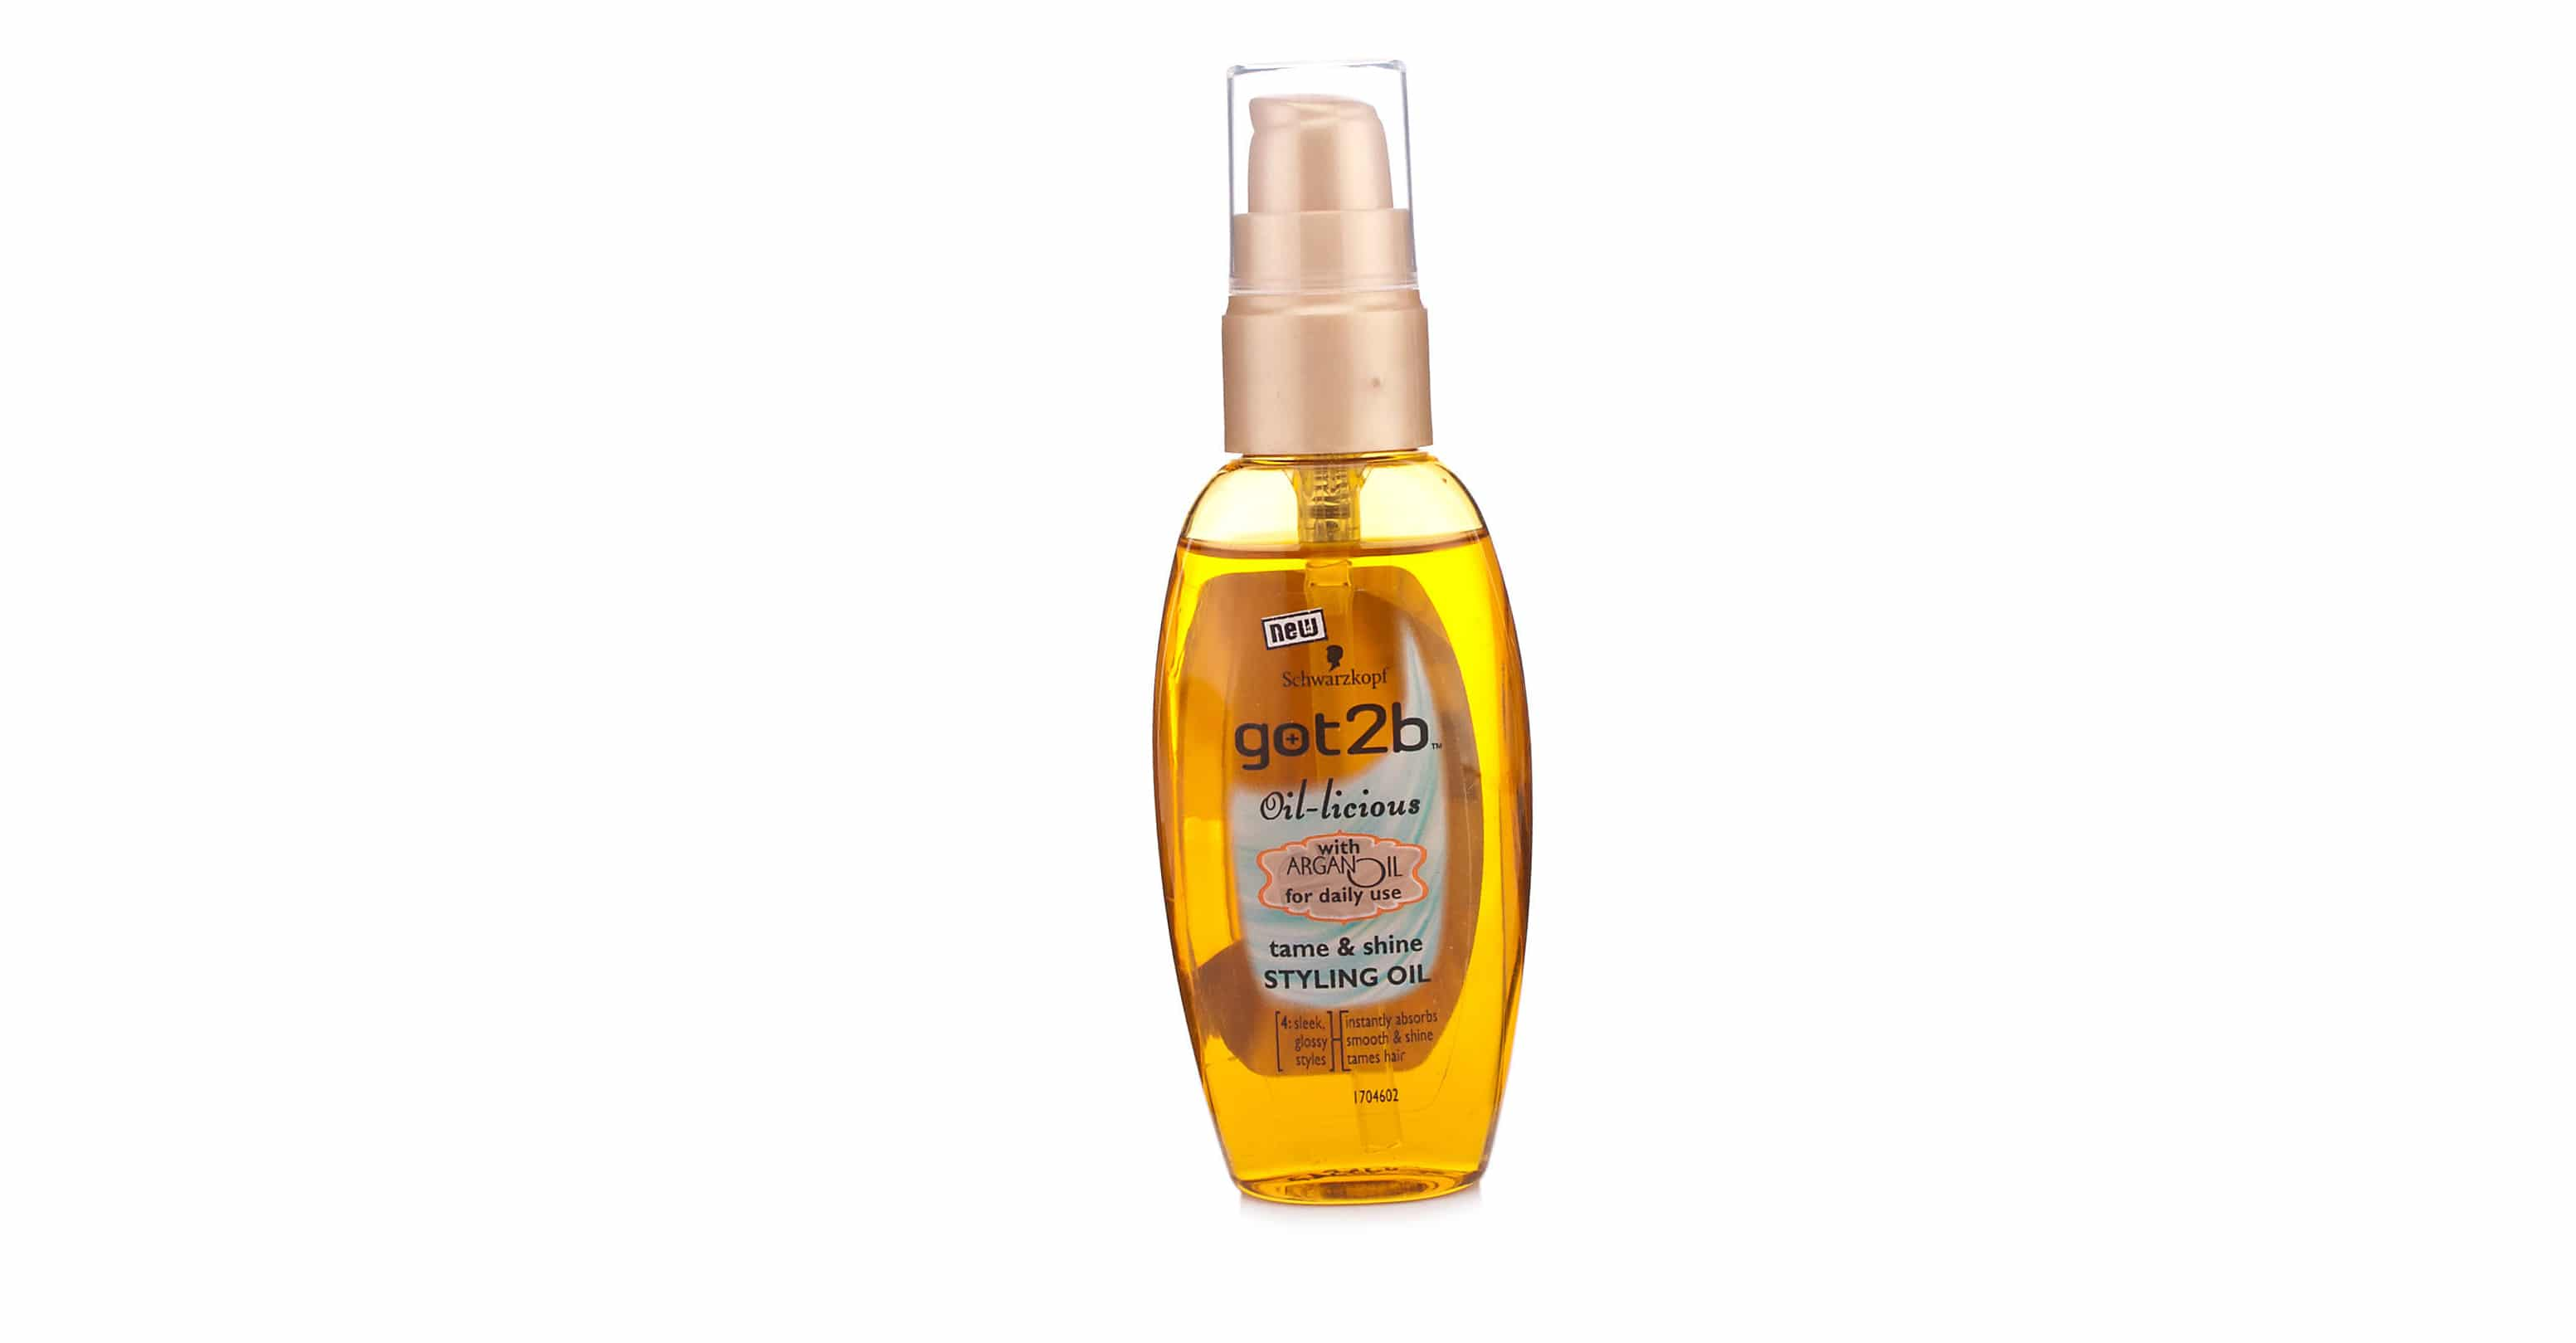 argan oil got2b homens que se cuidam copy